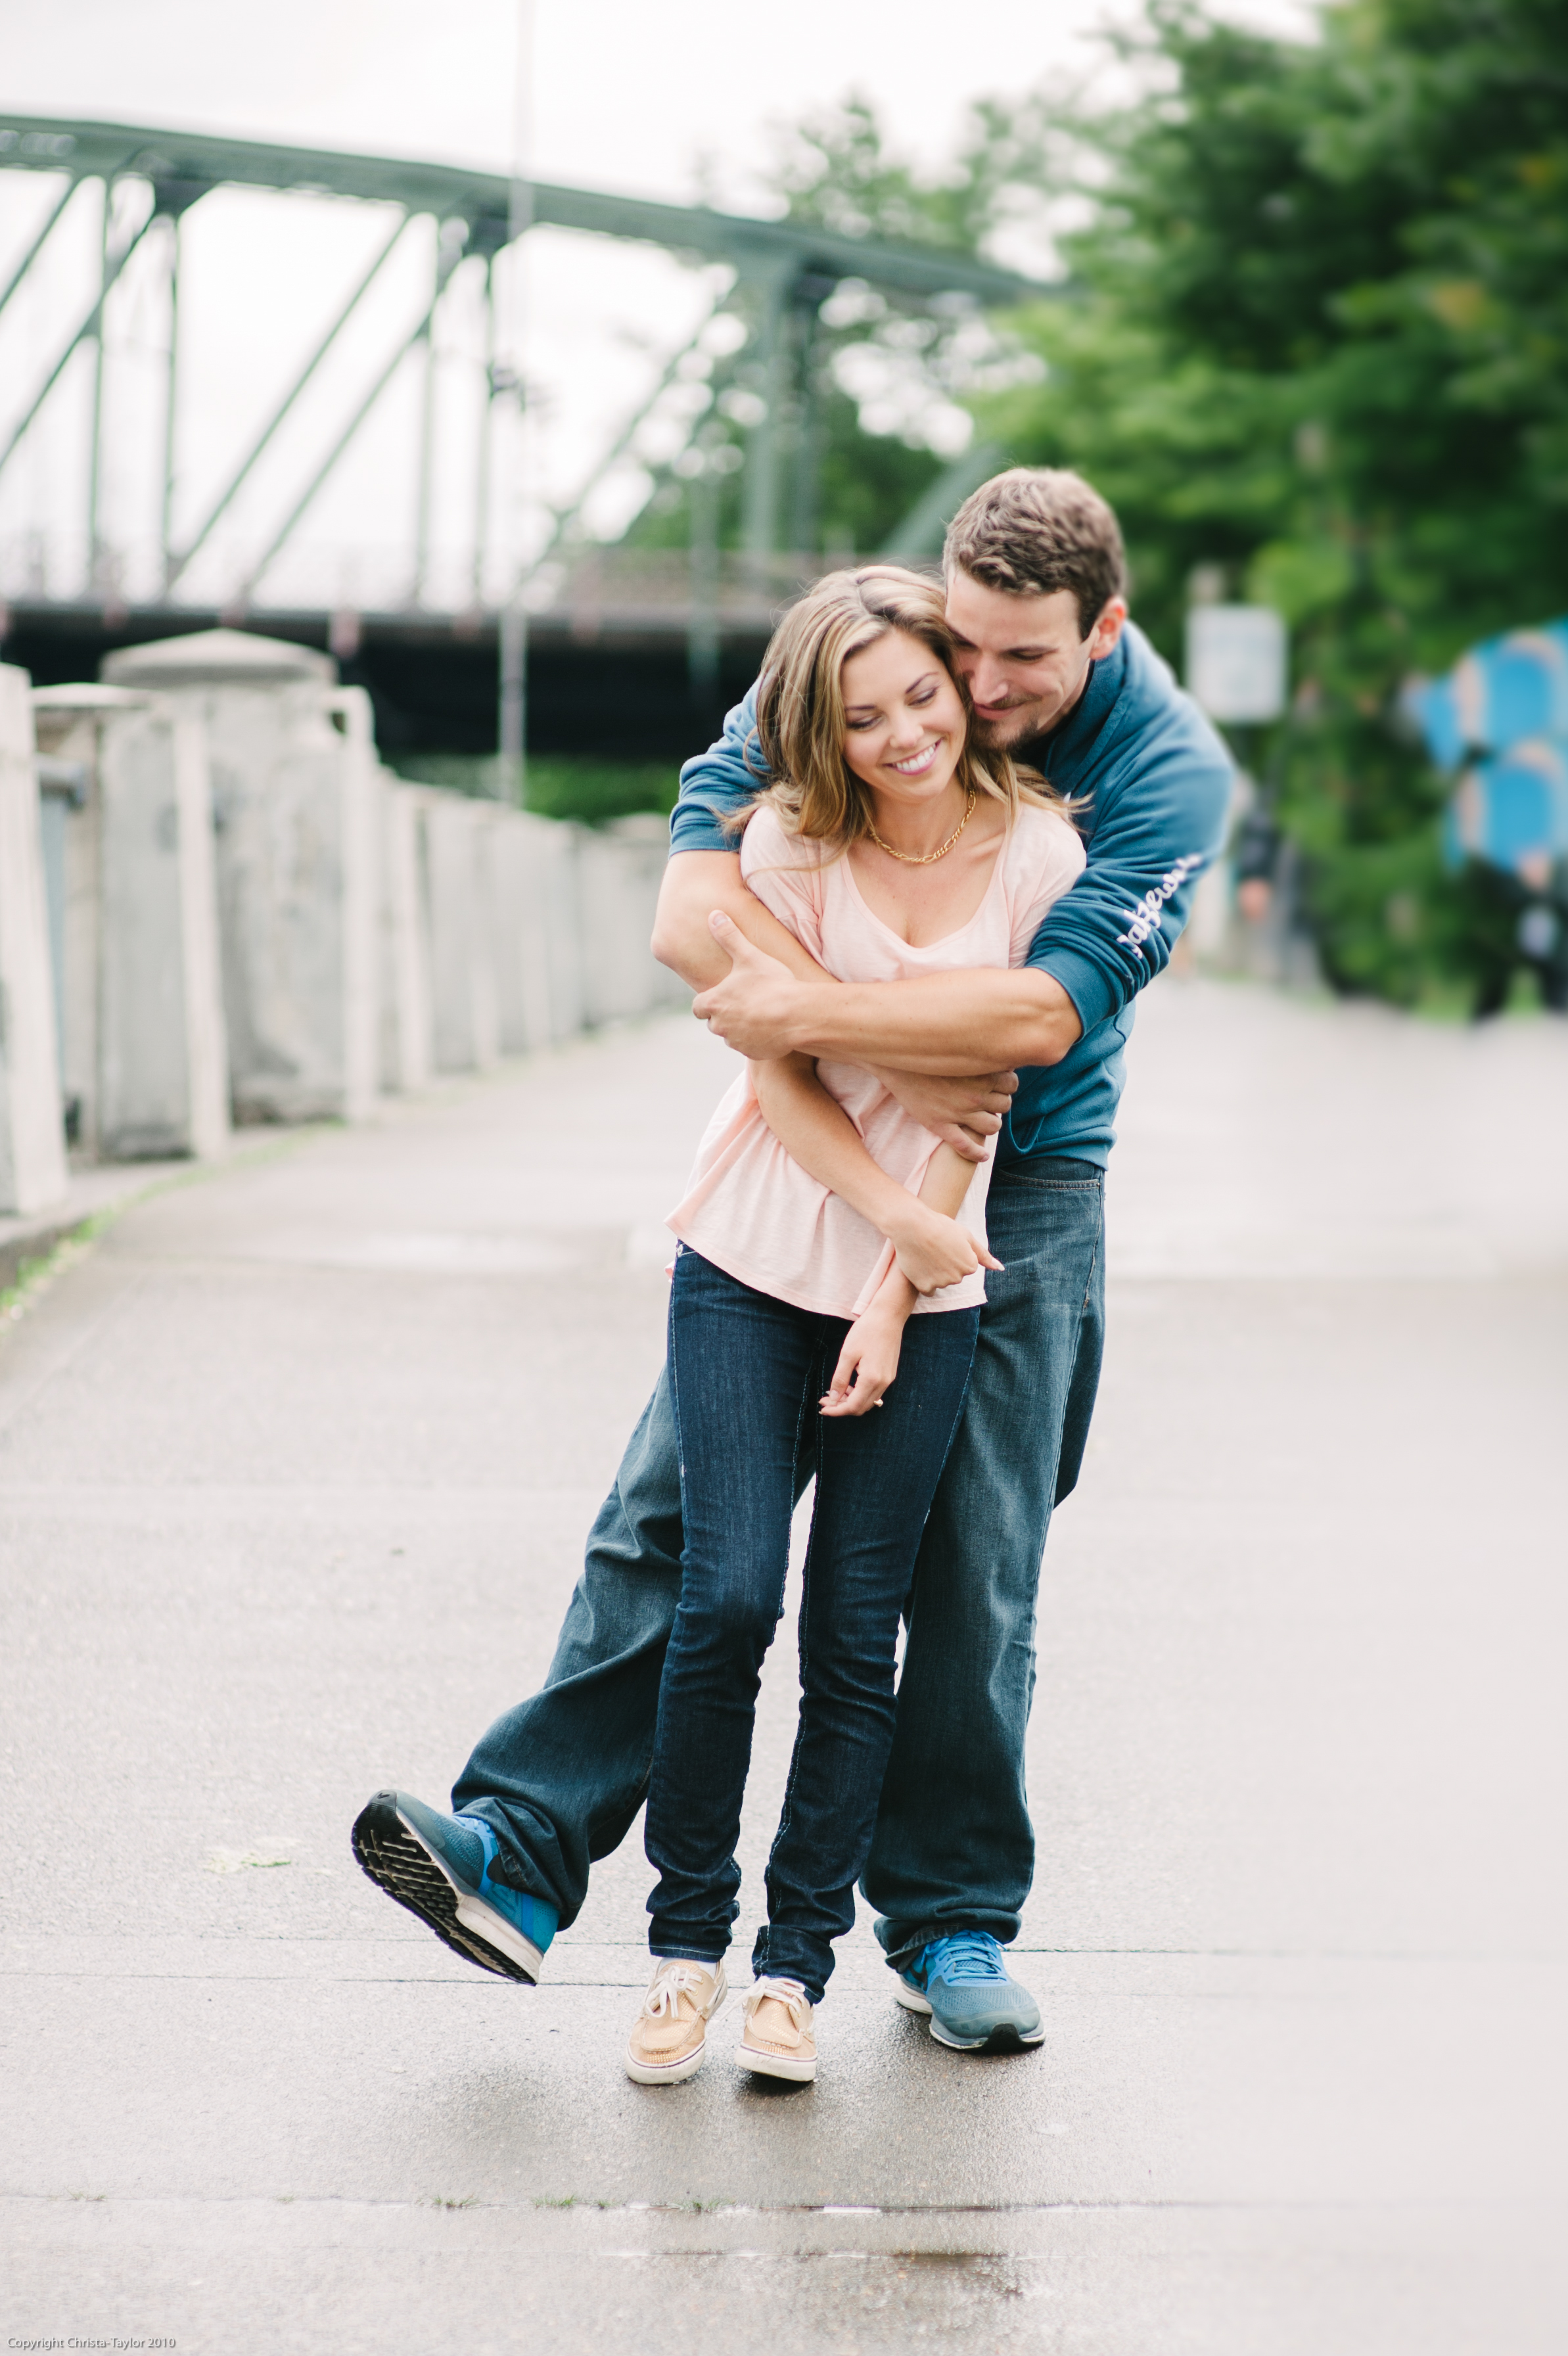 19-Portland_engagement_photography_christa_taylor_photography-36.jpg